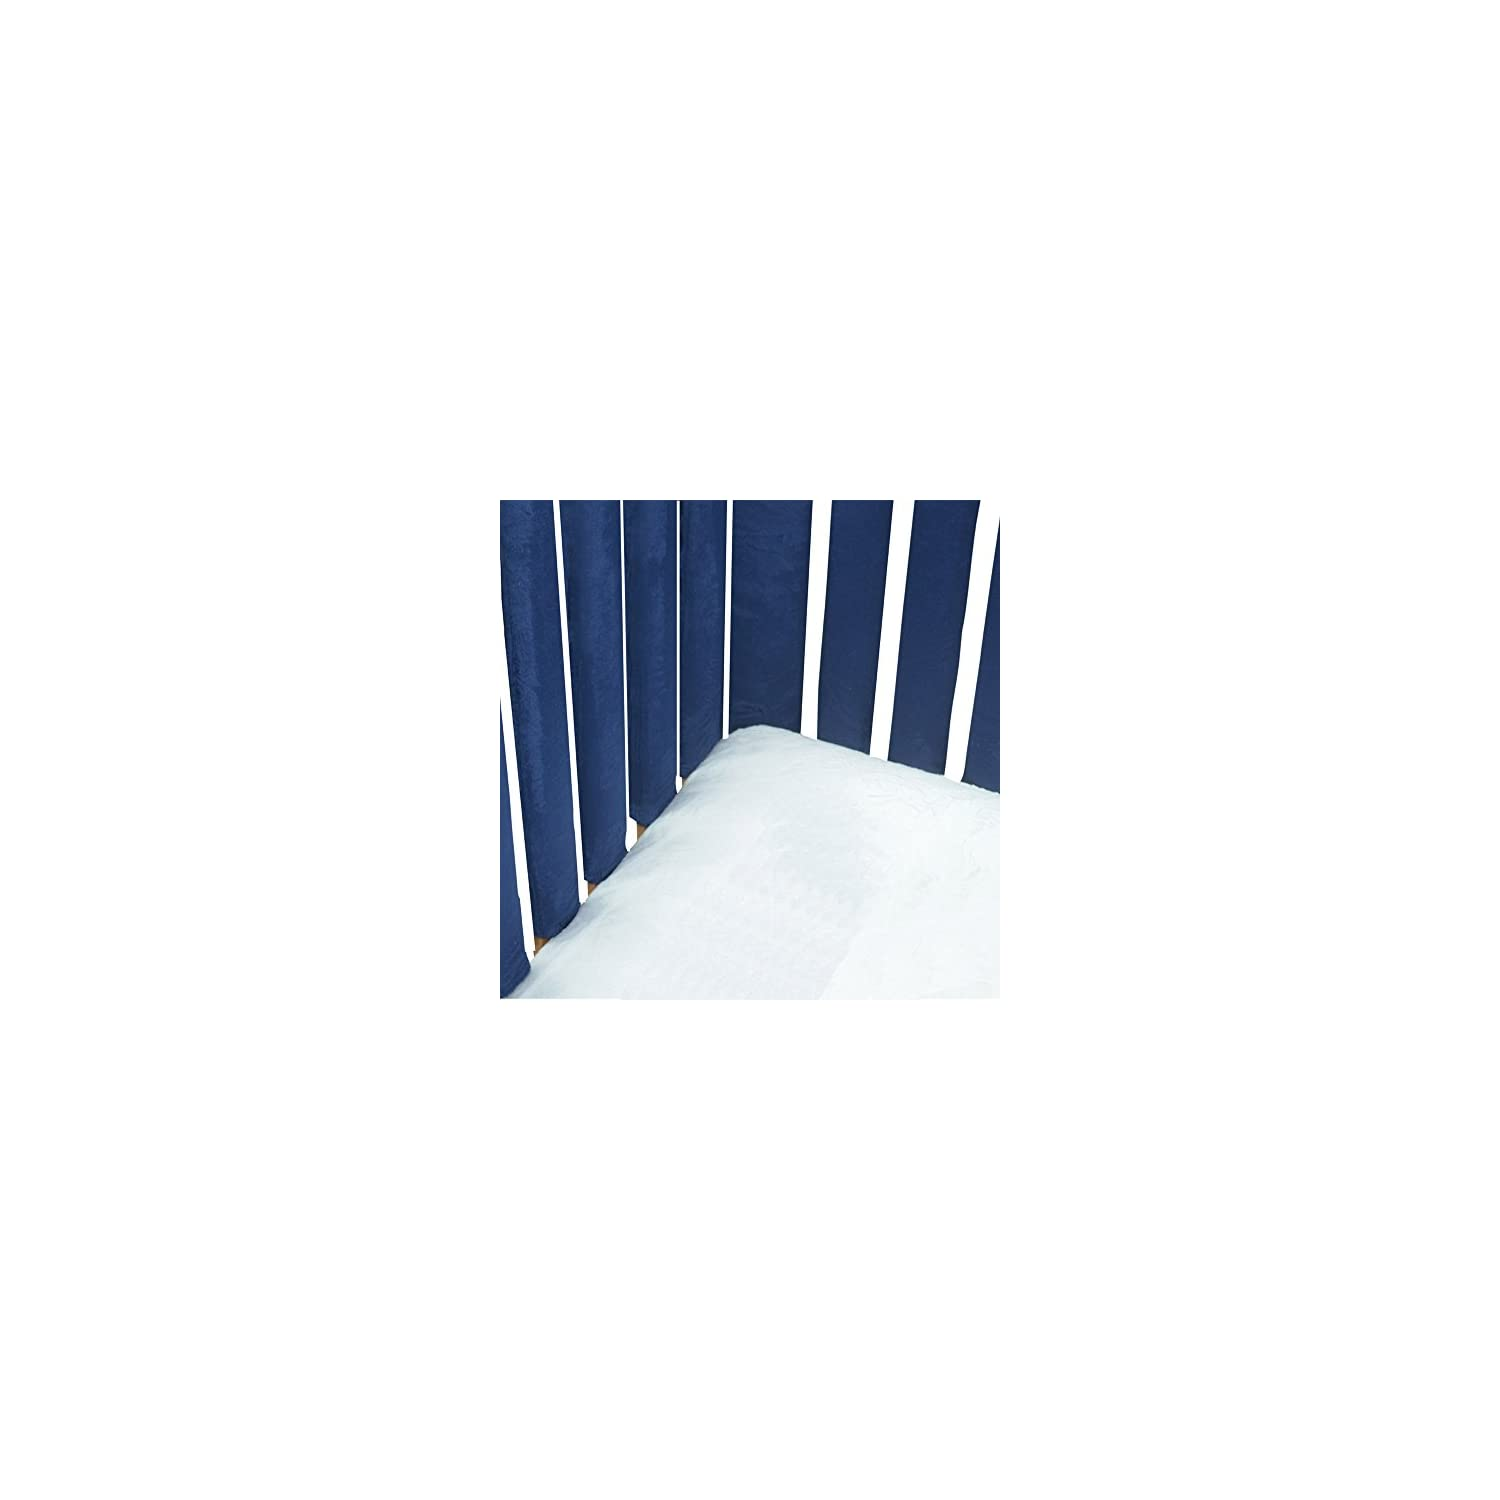 Pure Safety Vertical Crib Liners in Luxurious Navy Minky 2 Pack